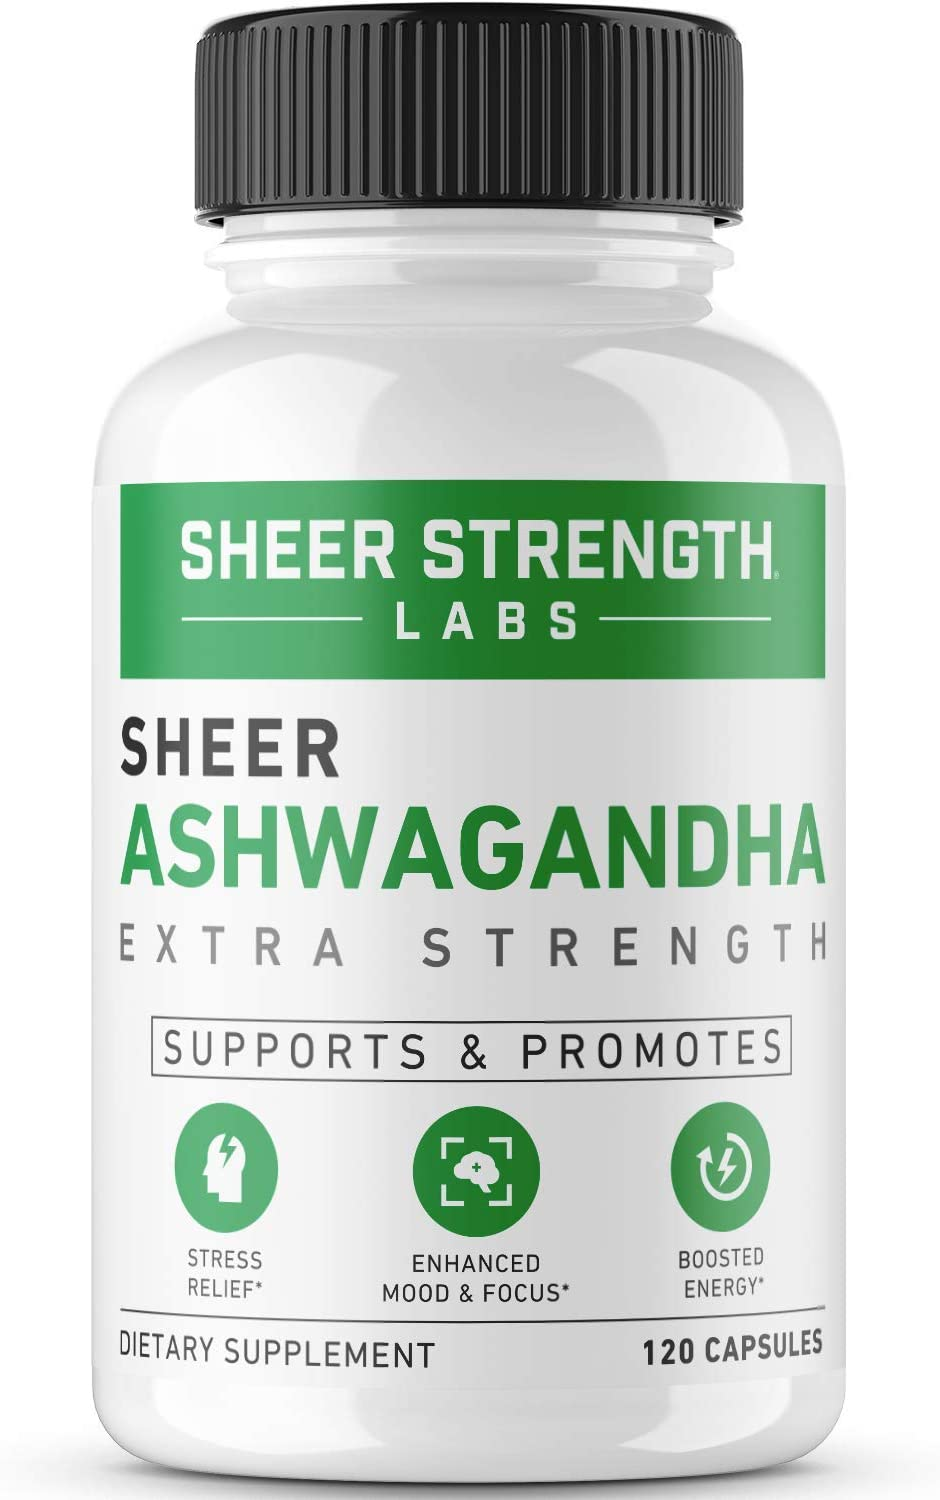 High Potency 2000mg Organic Ashwagandha Root Powder Extract | Natural Anti-Stress & Mood & Thyroid Support Supplement | 120 Gluten-Free & Non-GMO Veggie Capsules - Sheer Strength Labs